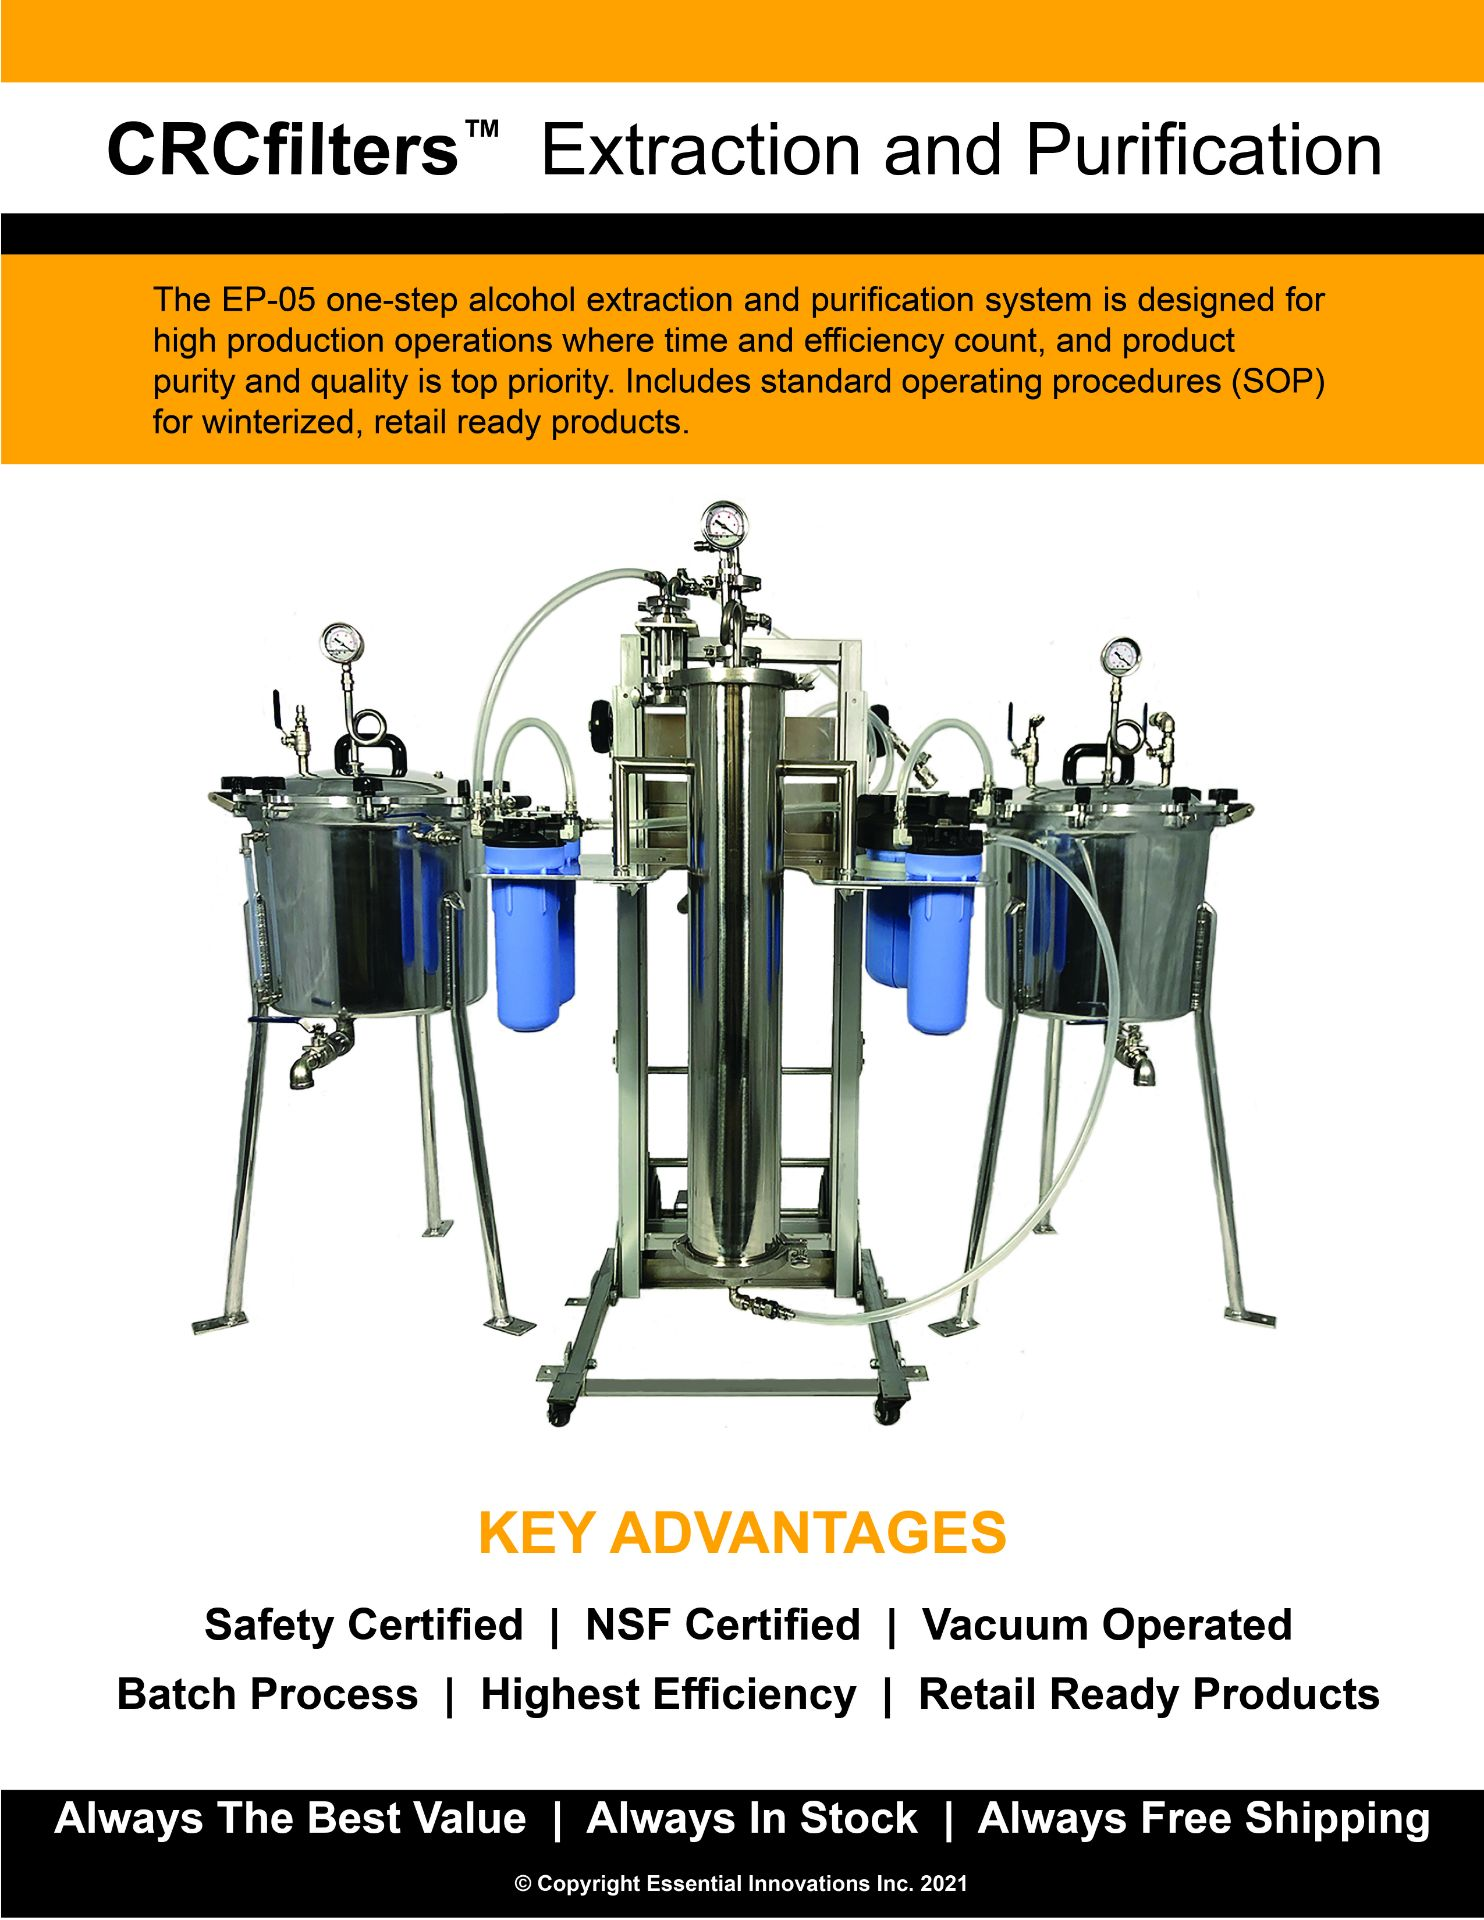 Used-CRCfilters Ethanol Extraction/Purification System. Model EP-05 w/ 20 Gal Collection Vessel - Image 5 of 6